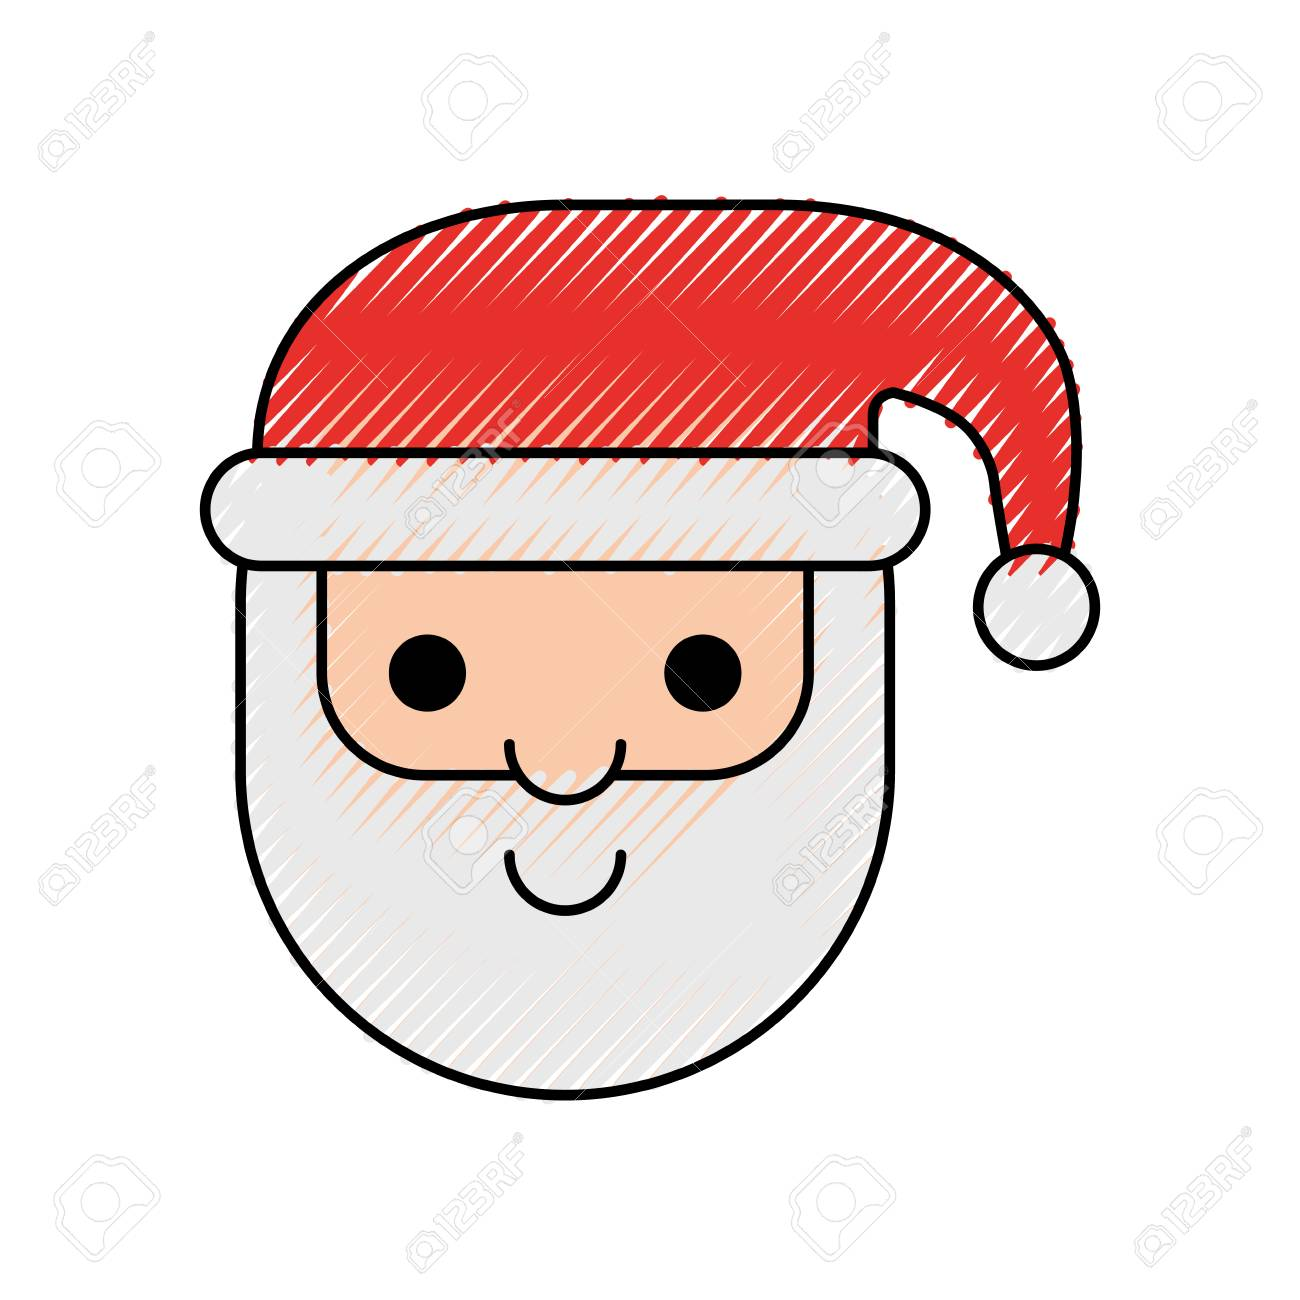 e711145caba99 Santa claus christmas cartoon character with hat and beard vector  illustration Stock Vector - 90316520